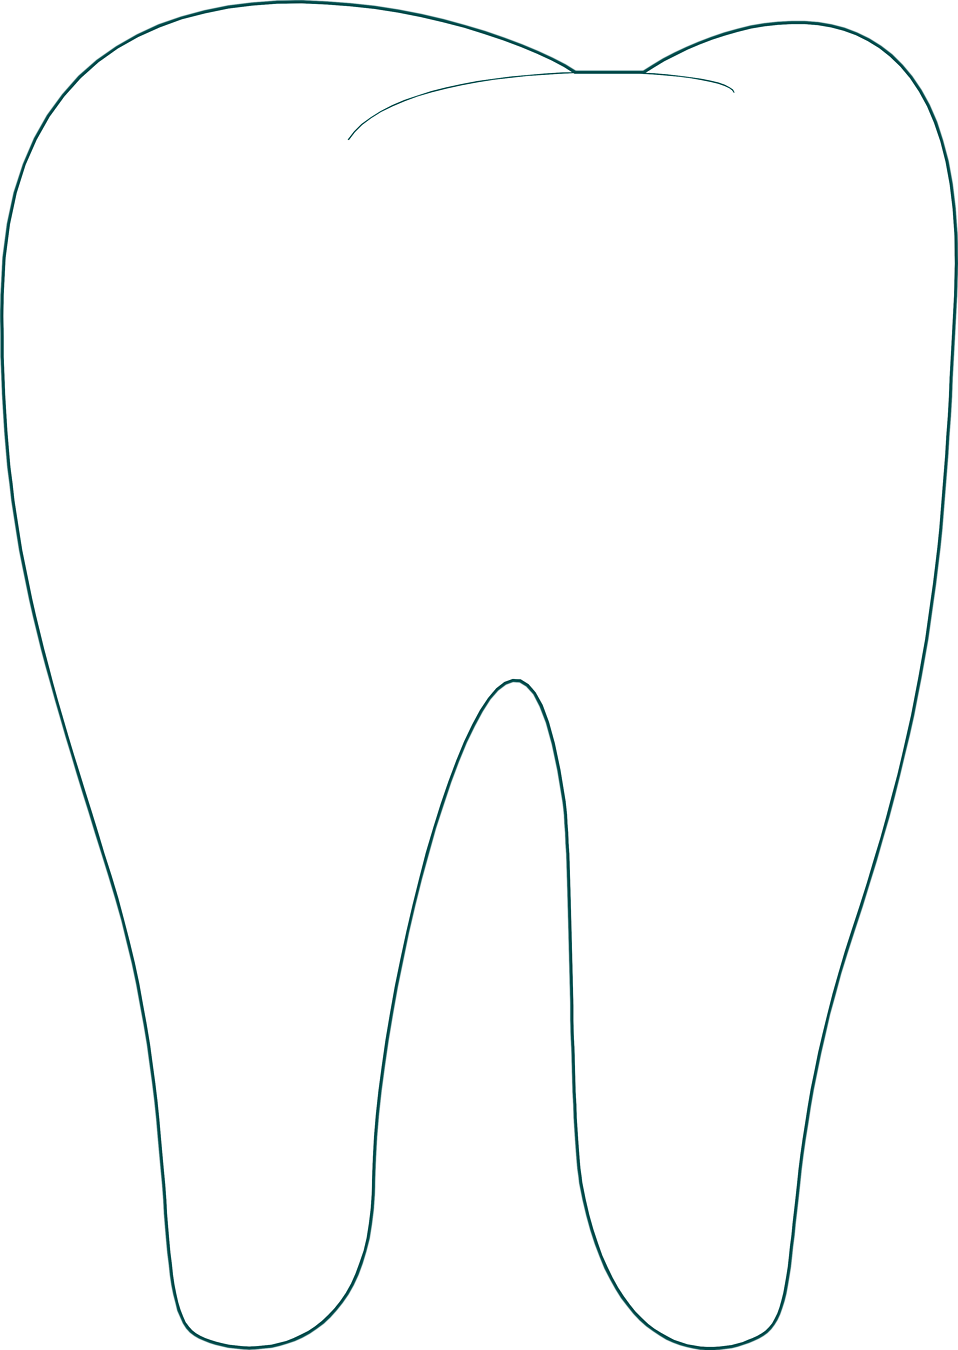 Teeth clipart background Tooth Clipart Background Background No